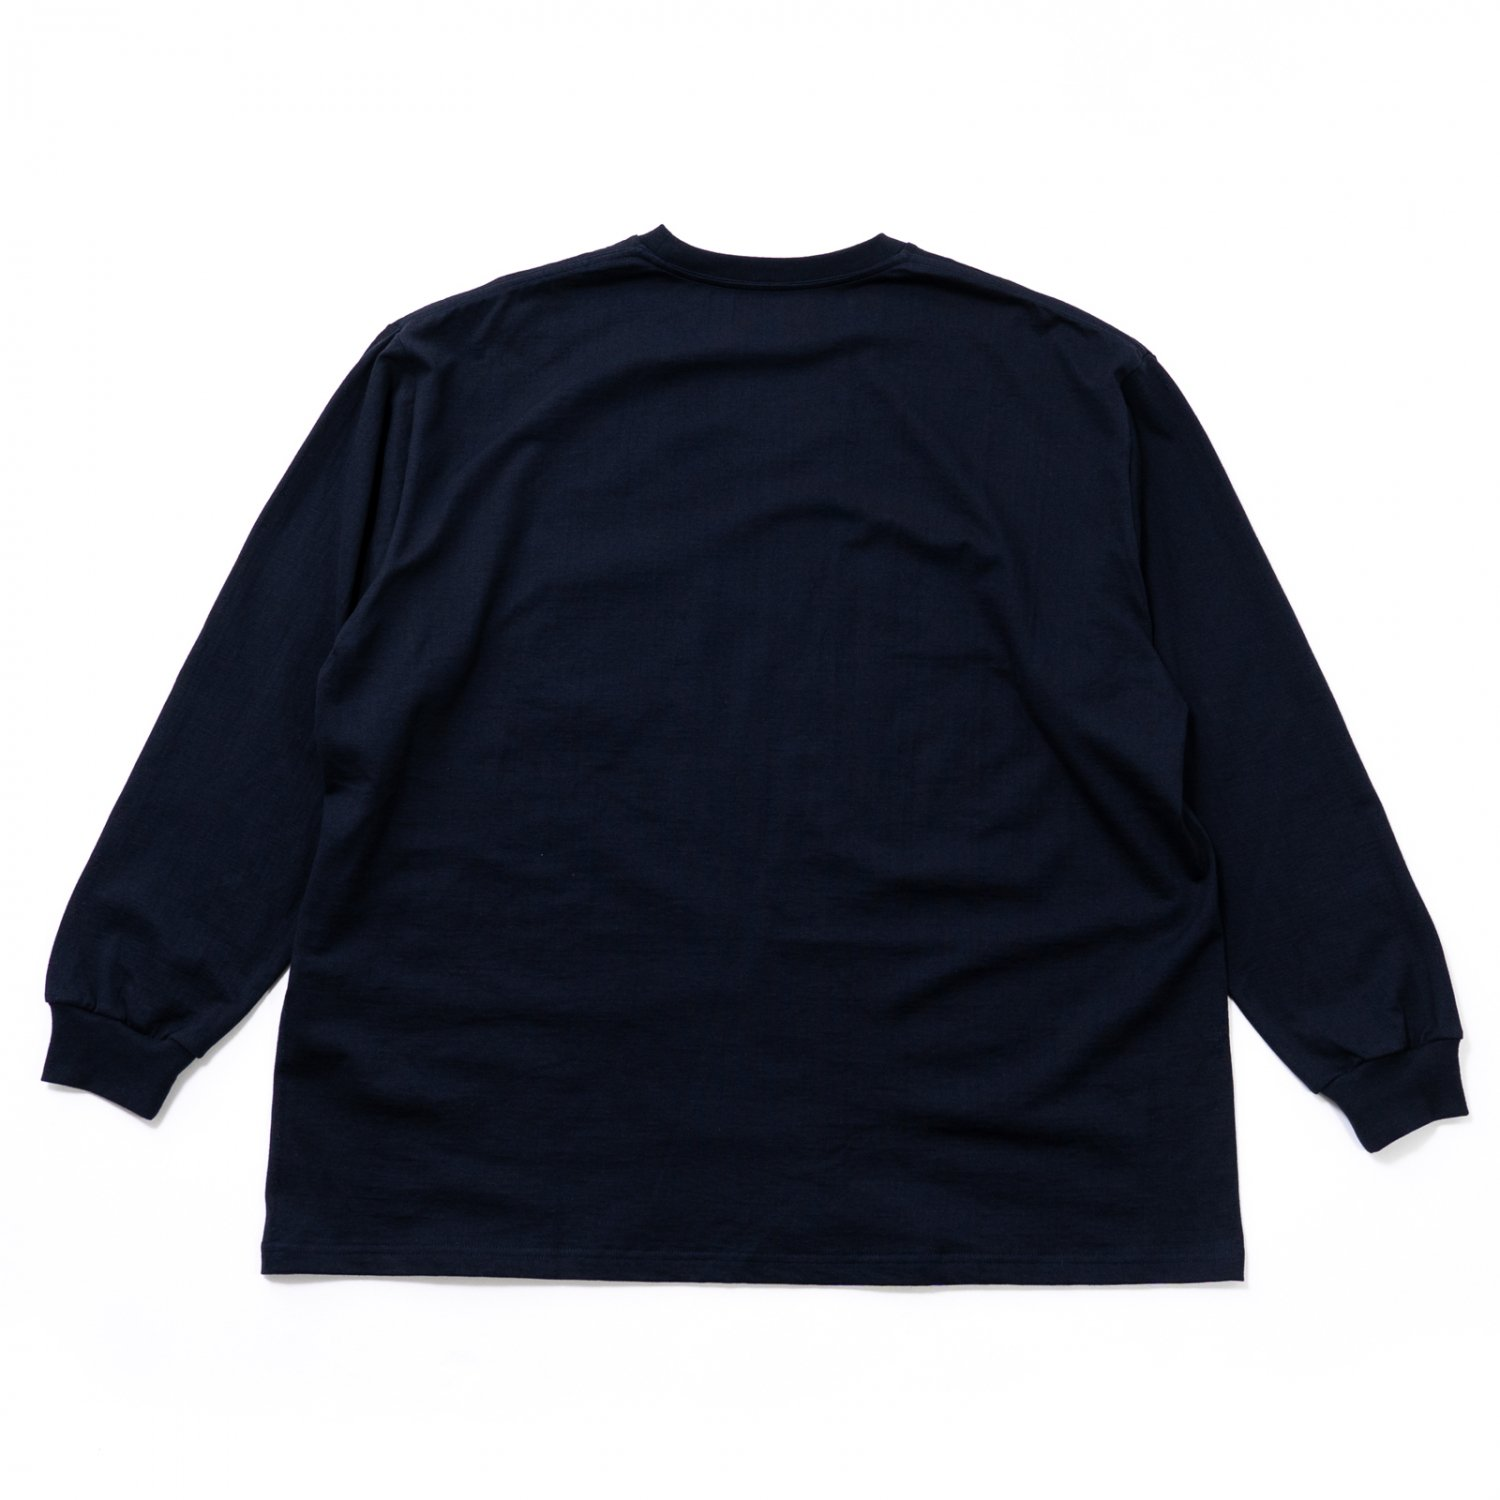 Graphpaper * L/S Oversized Pocket Tee * Navy